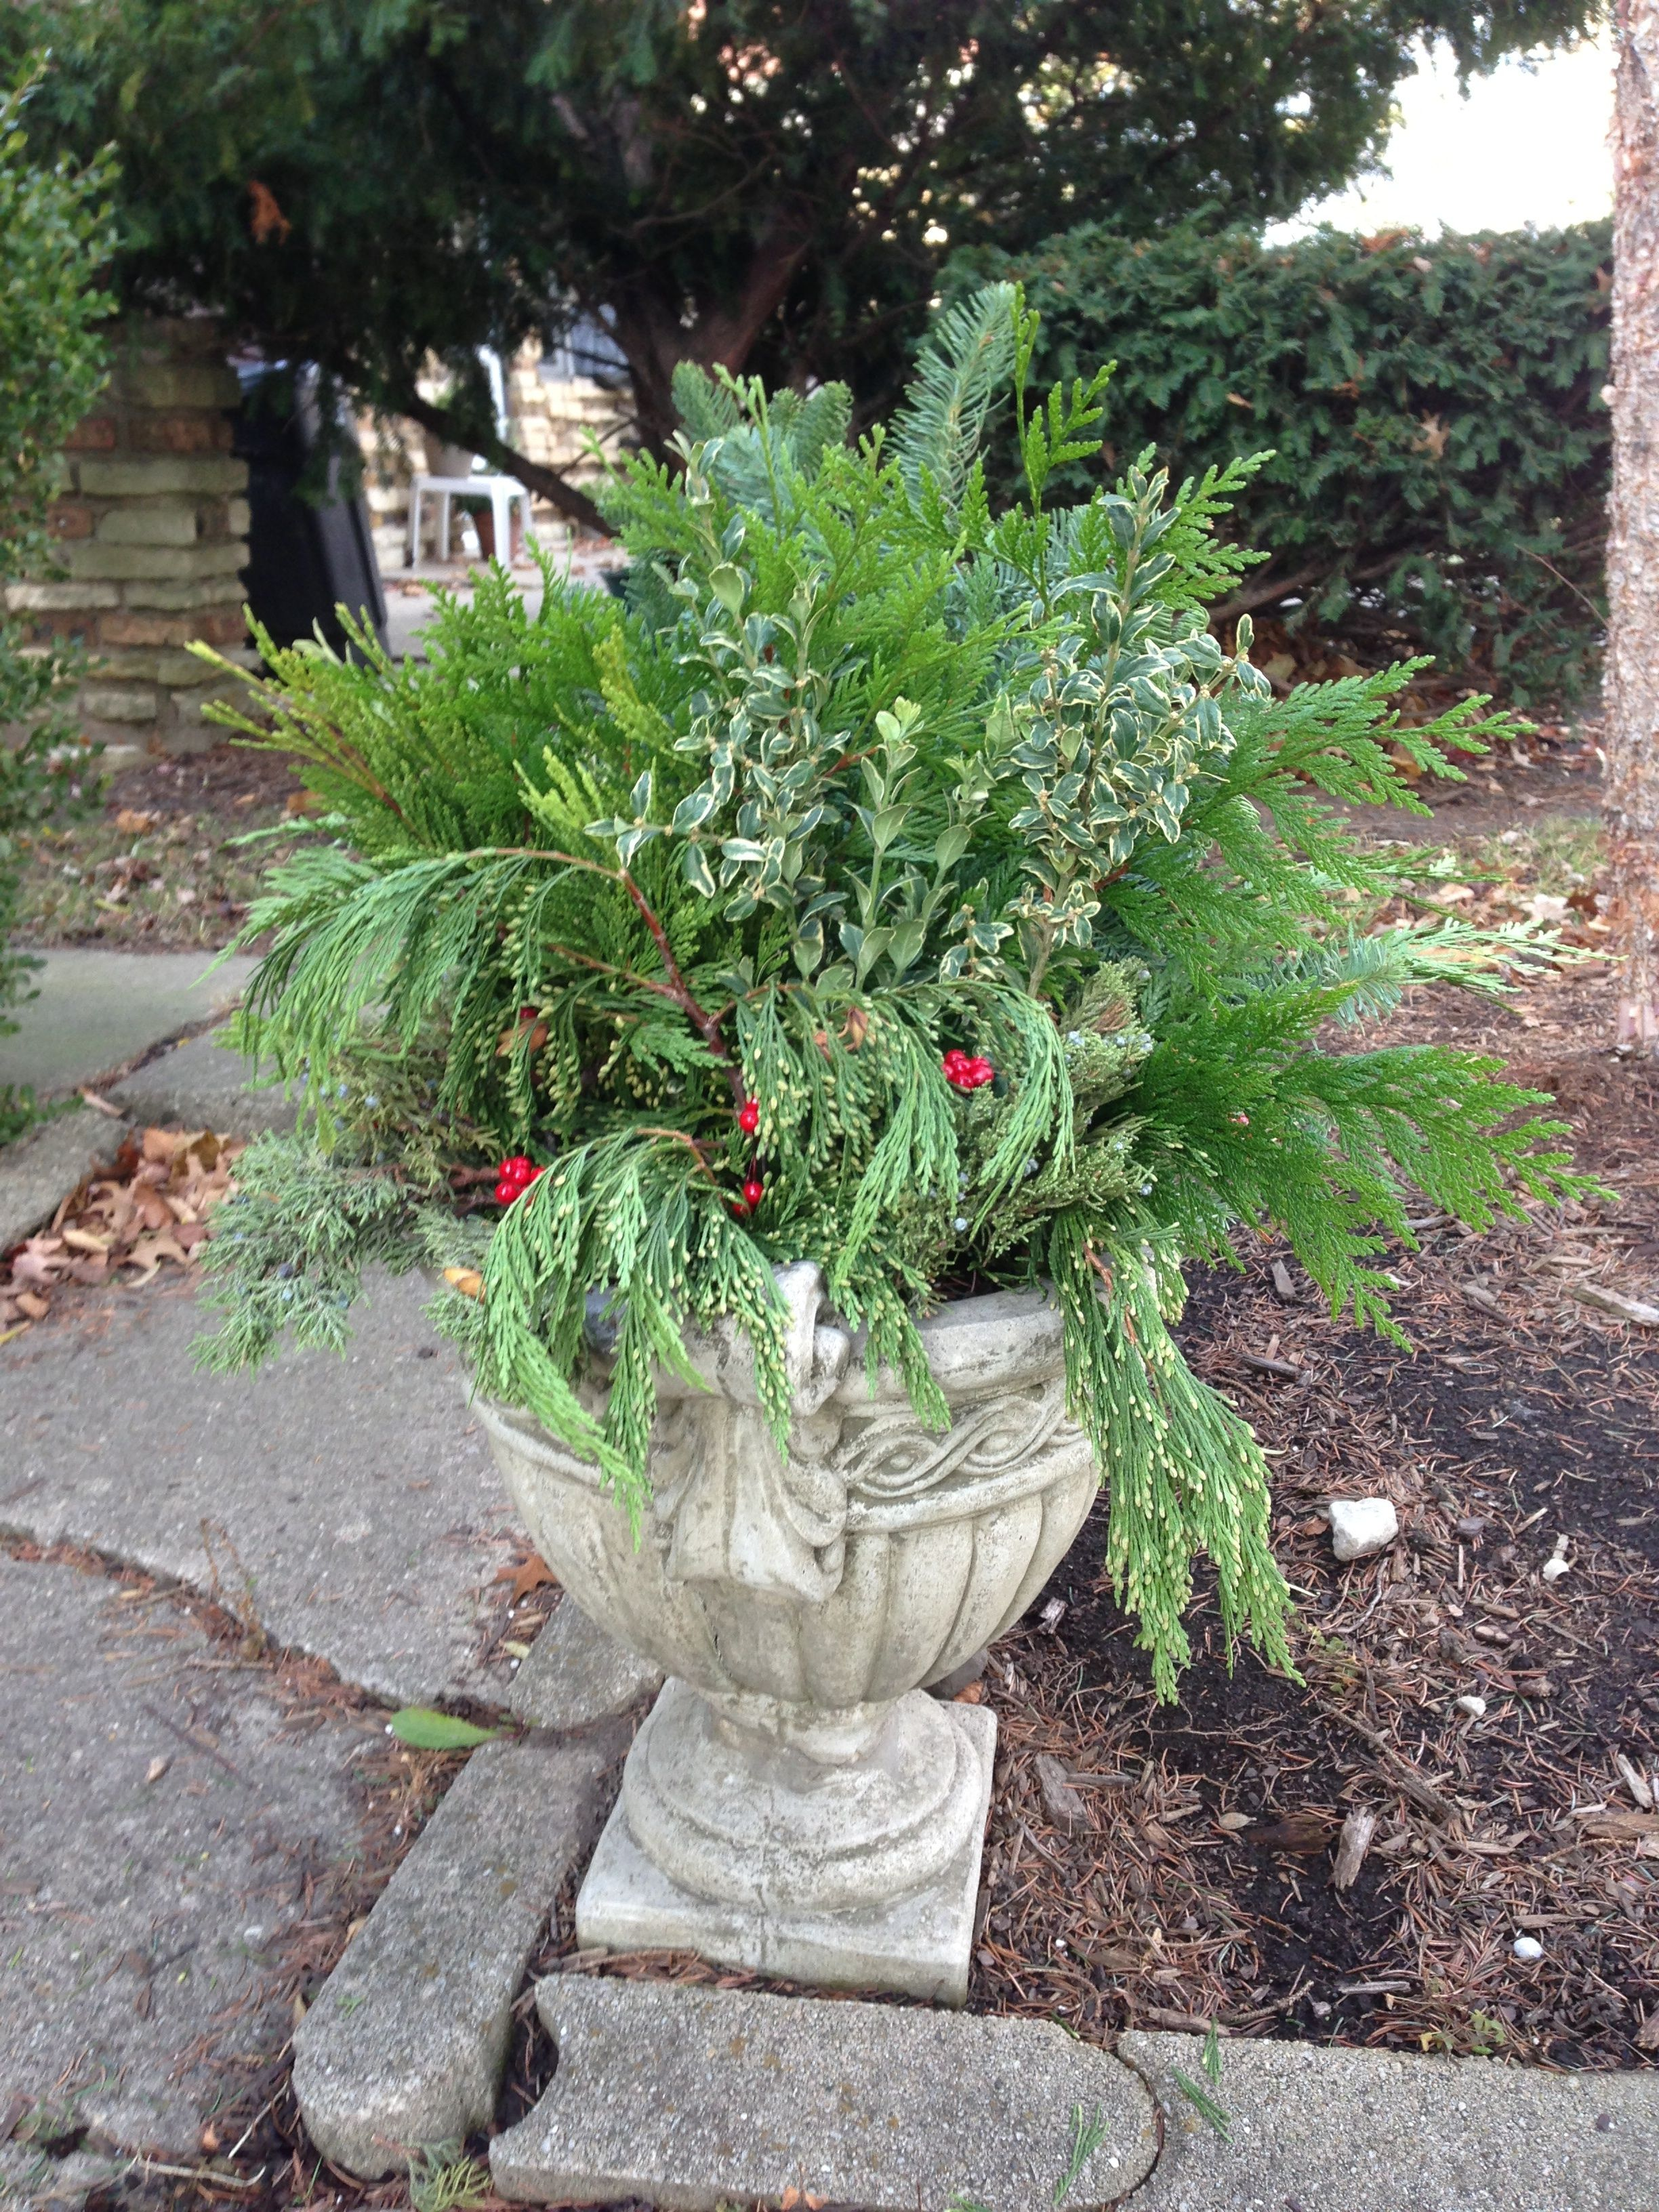 Decorate pots that held summer flowers with evergreens for the winter. Home Depot and places ...